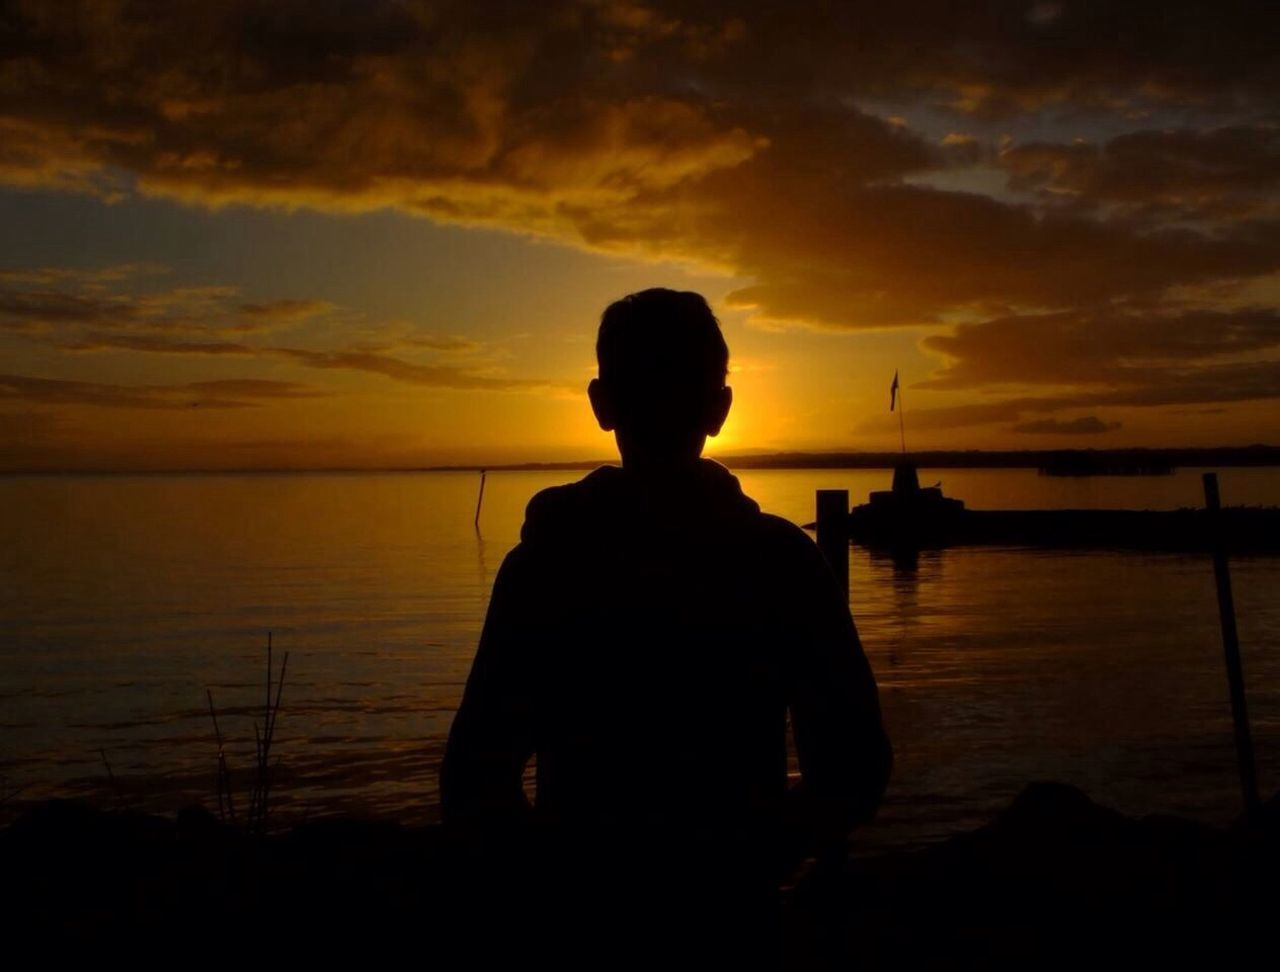 Silhouette Rear View of Boy Standing At Beach During Sunset